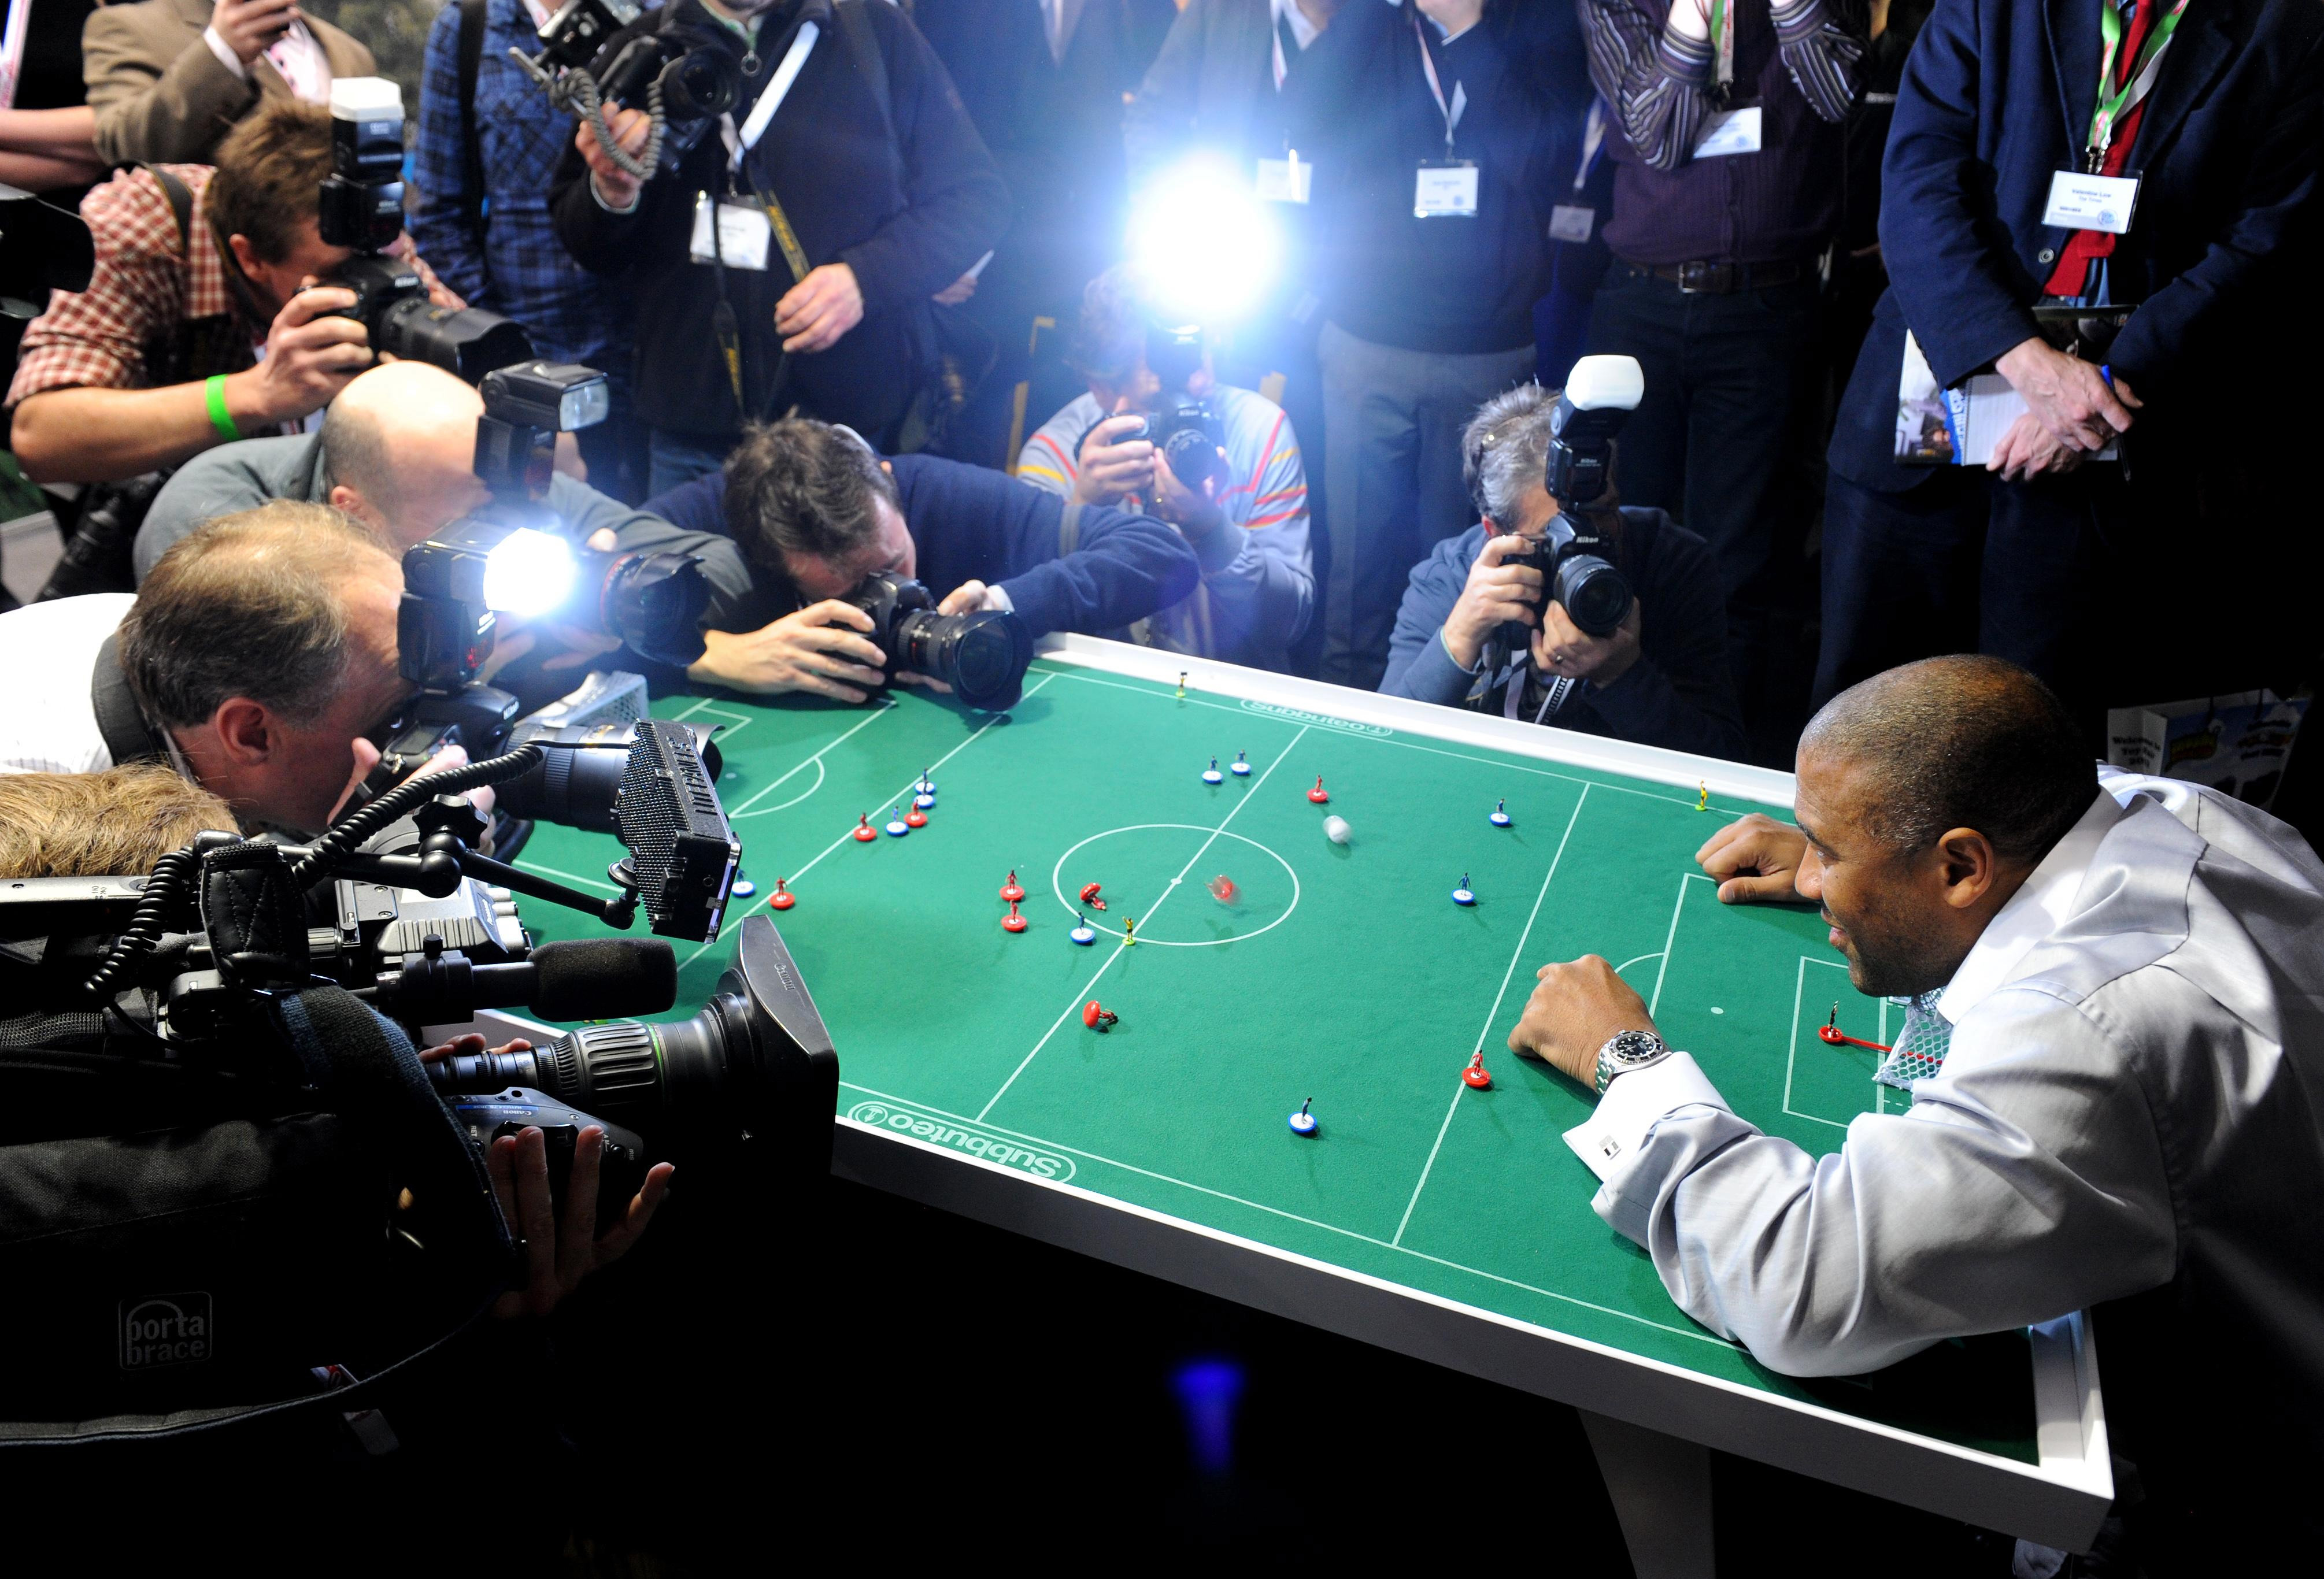 John Barnes playing Subbuteo in front of cameras